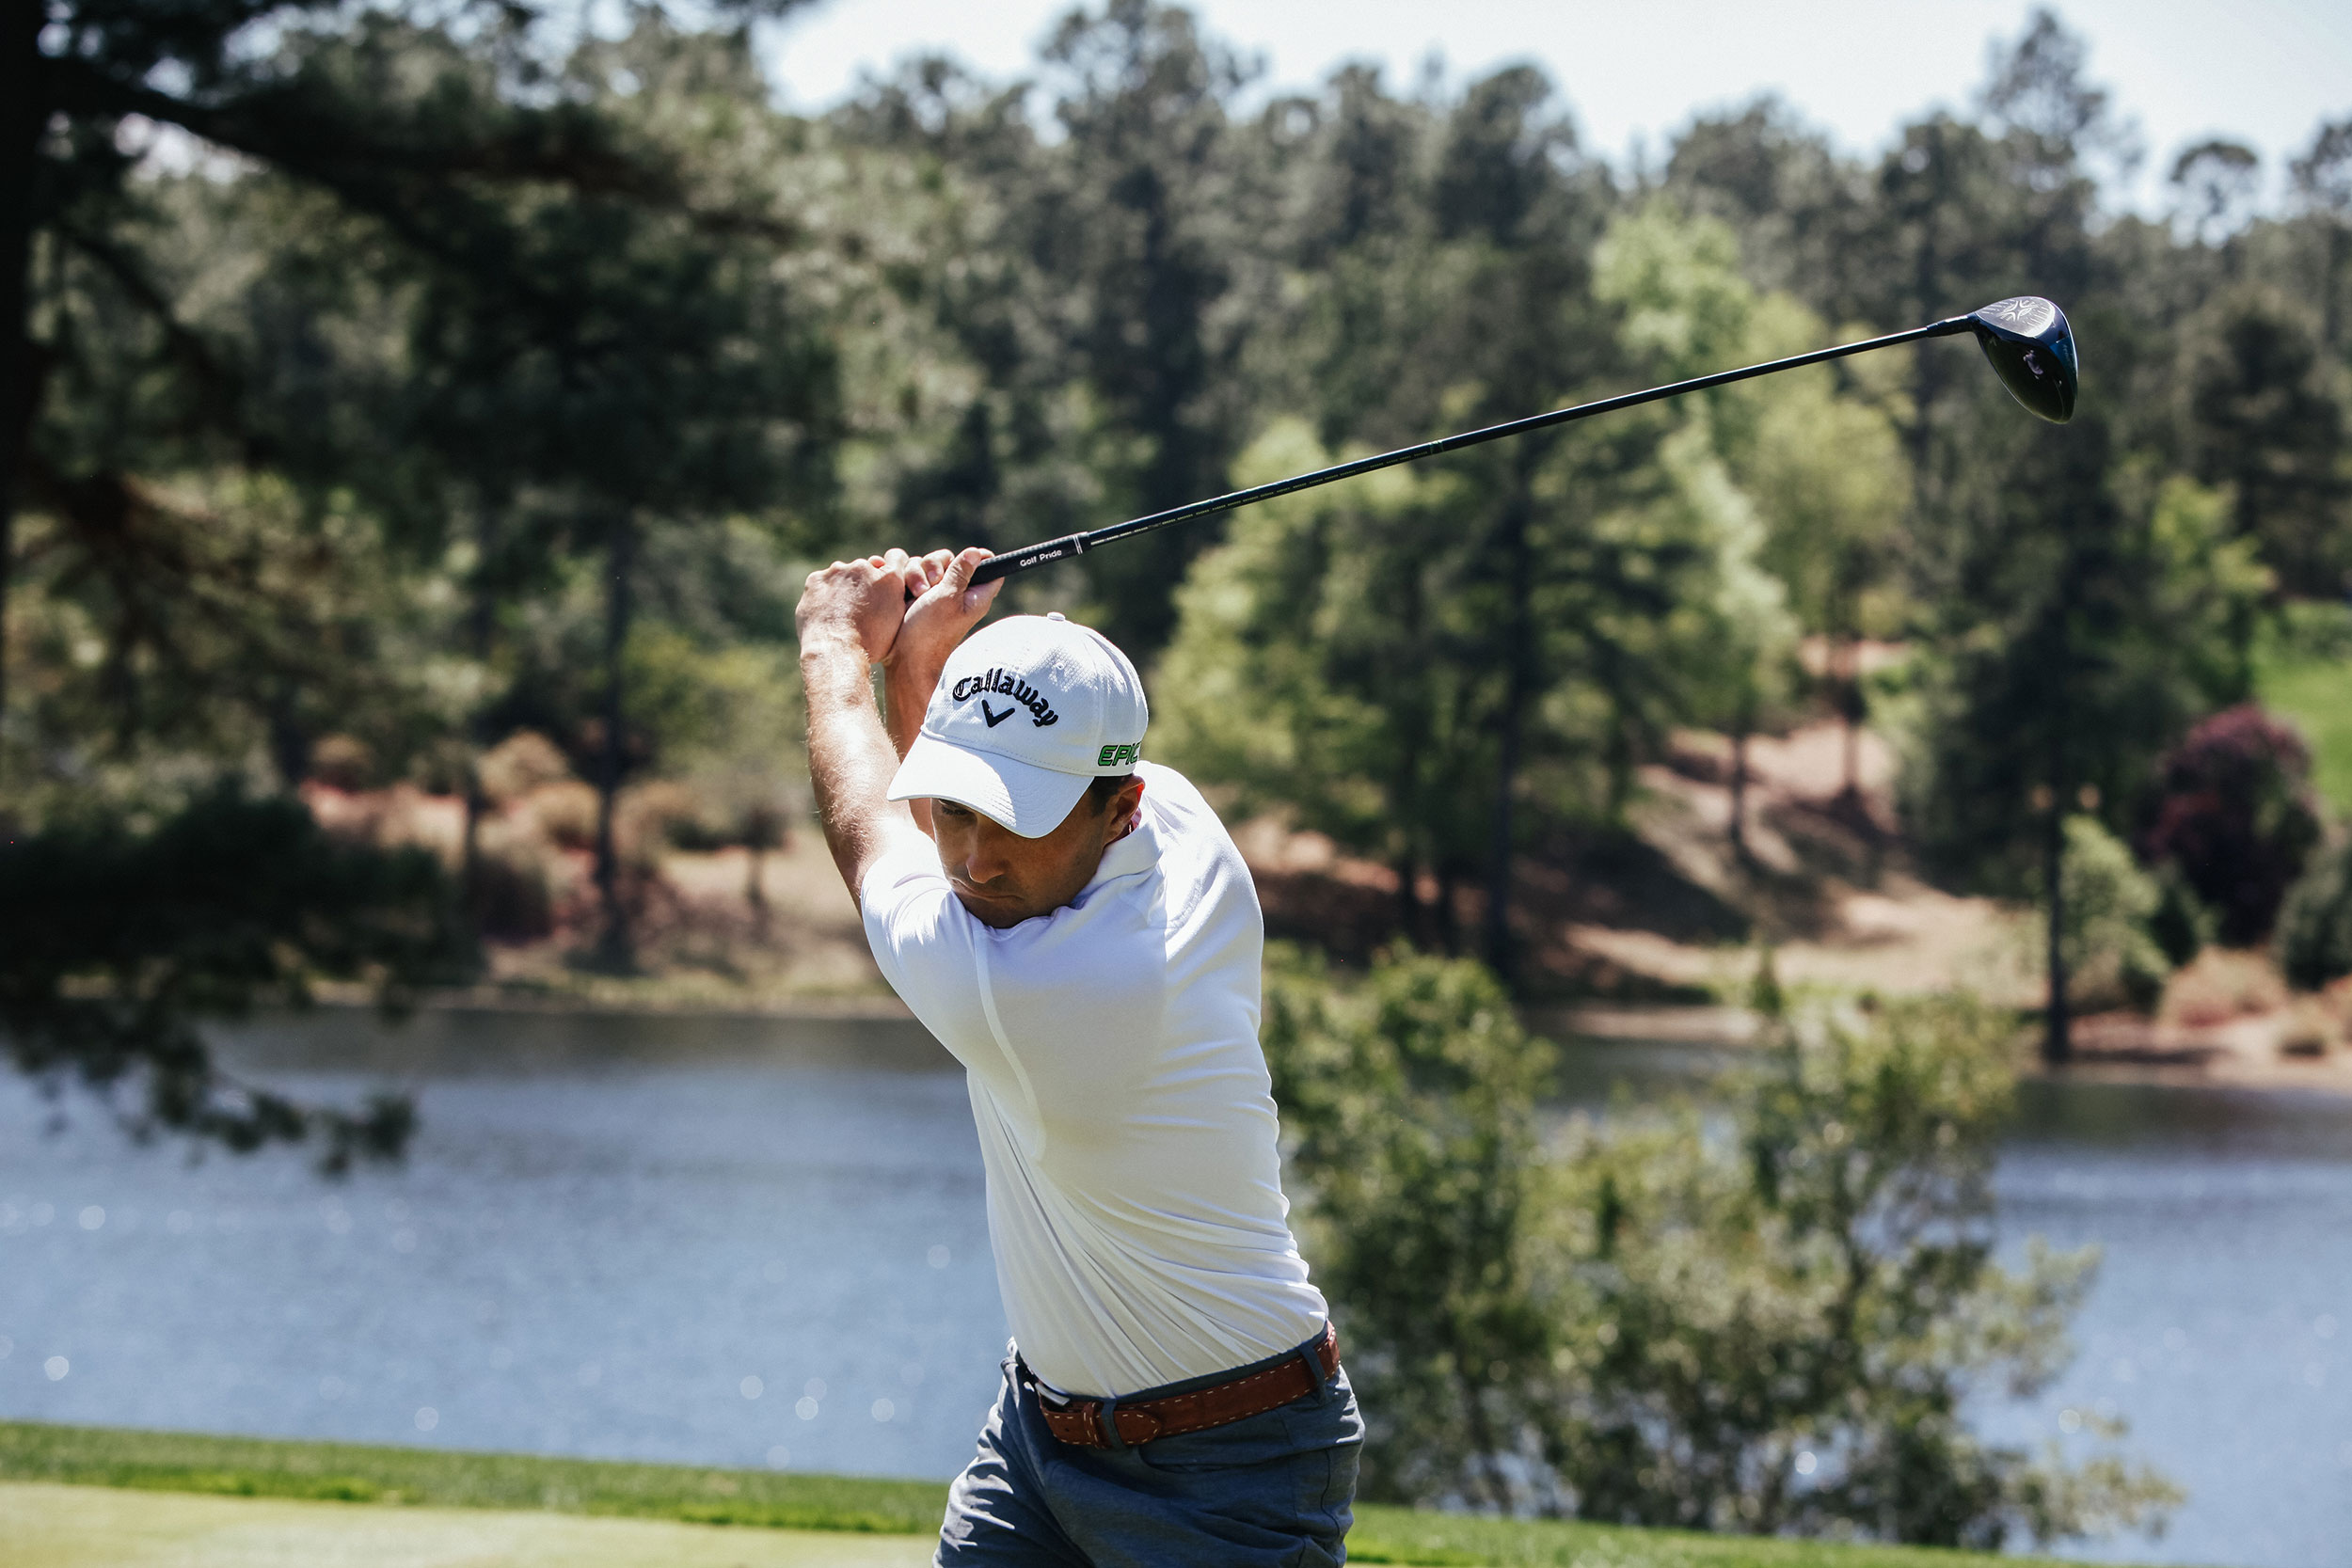 Dunning-Golf-Atlanta-5